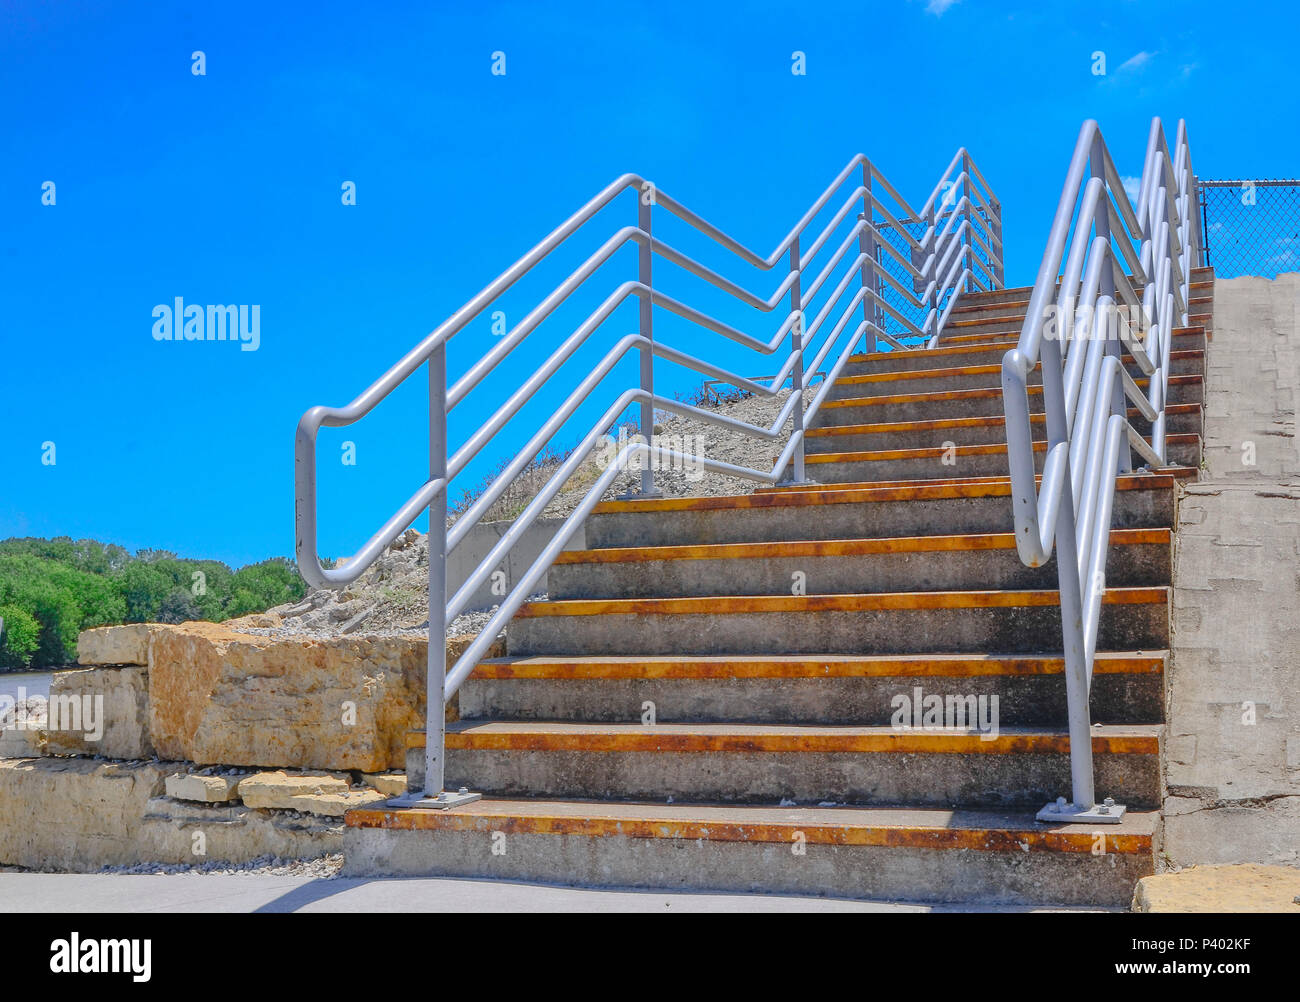 Stairway to no where - Stock Image